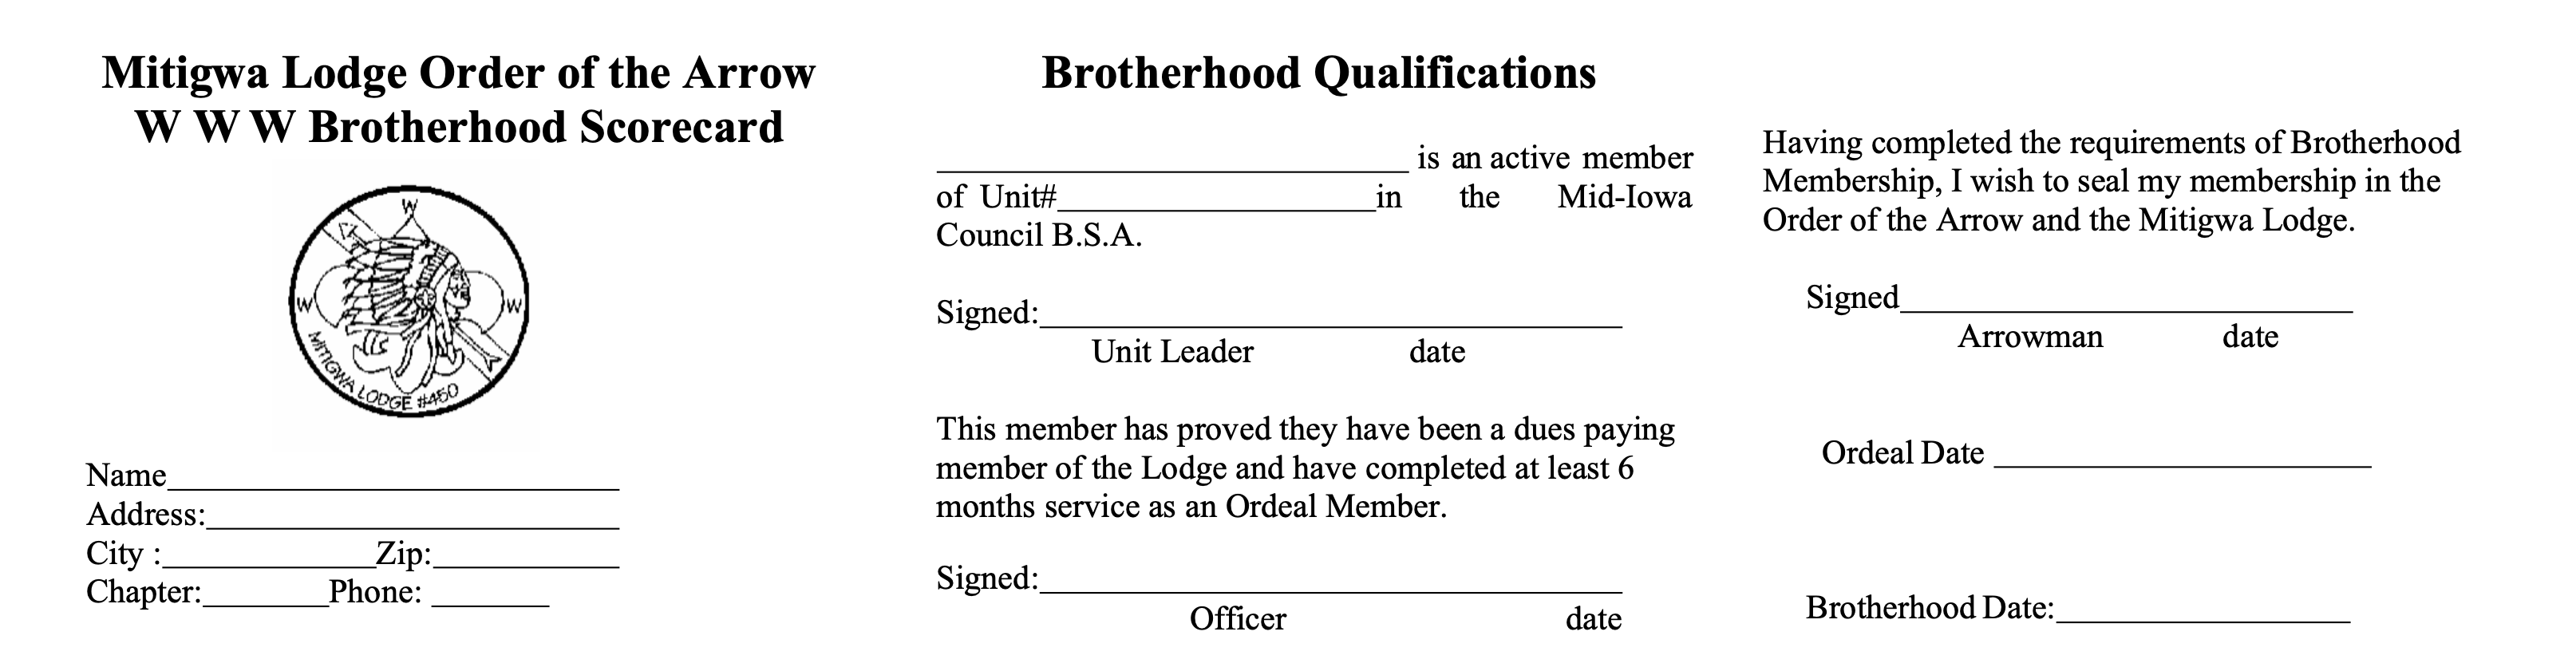 Brotherhood Scorecard